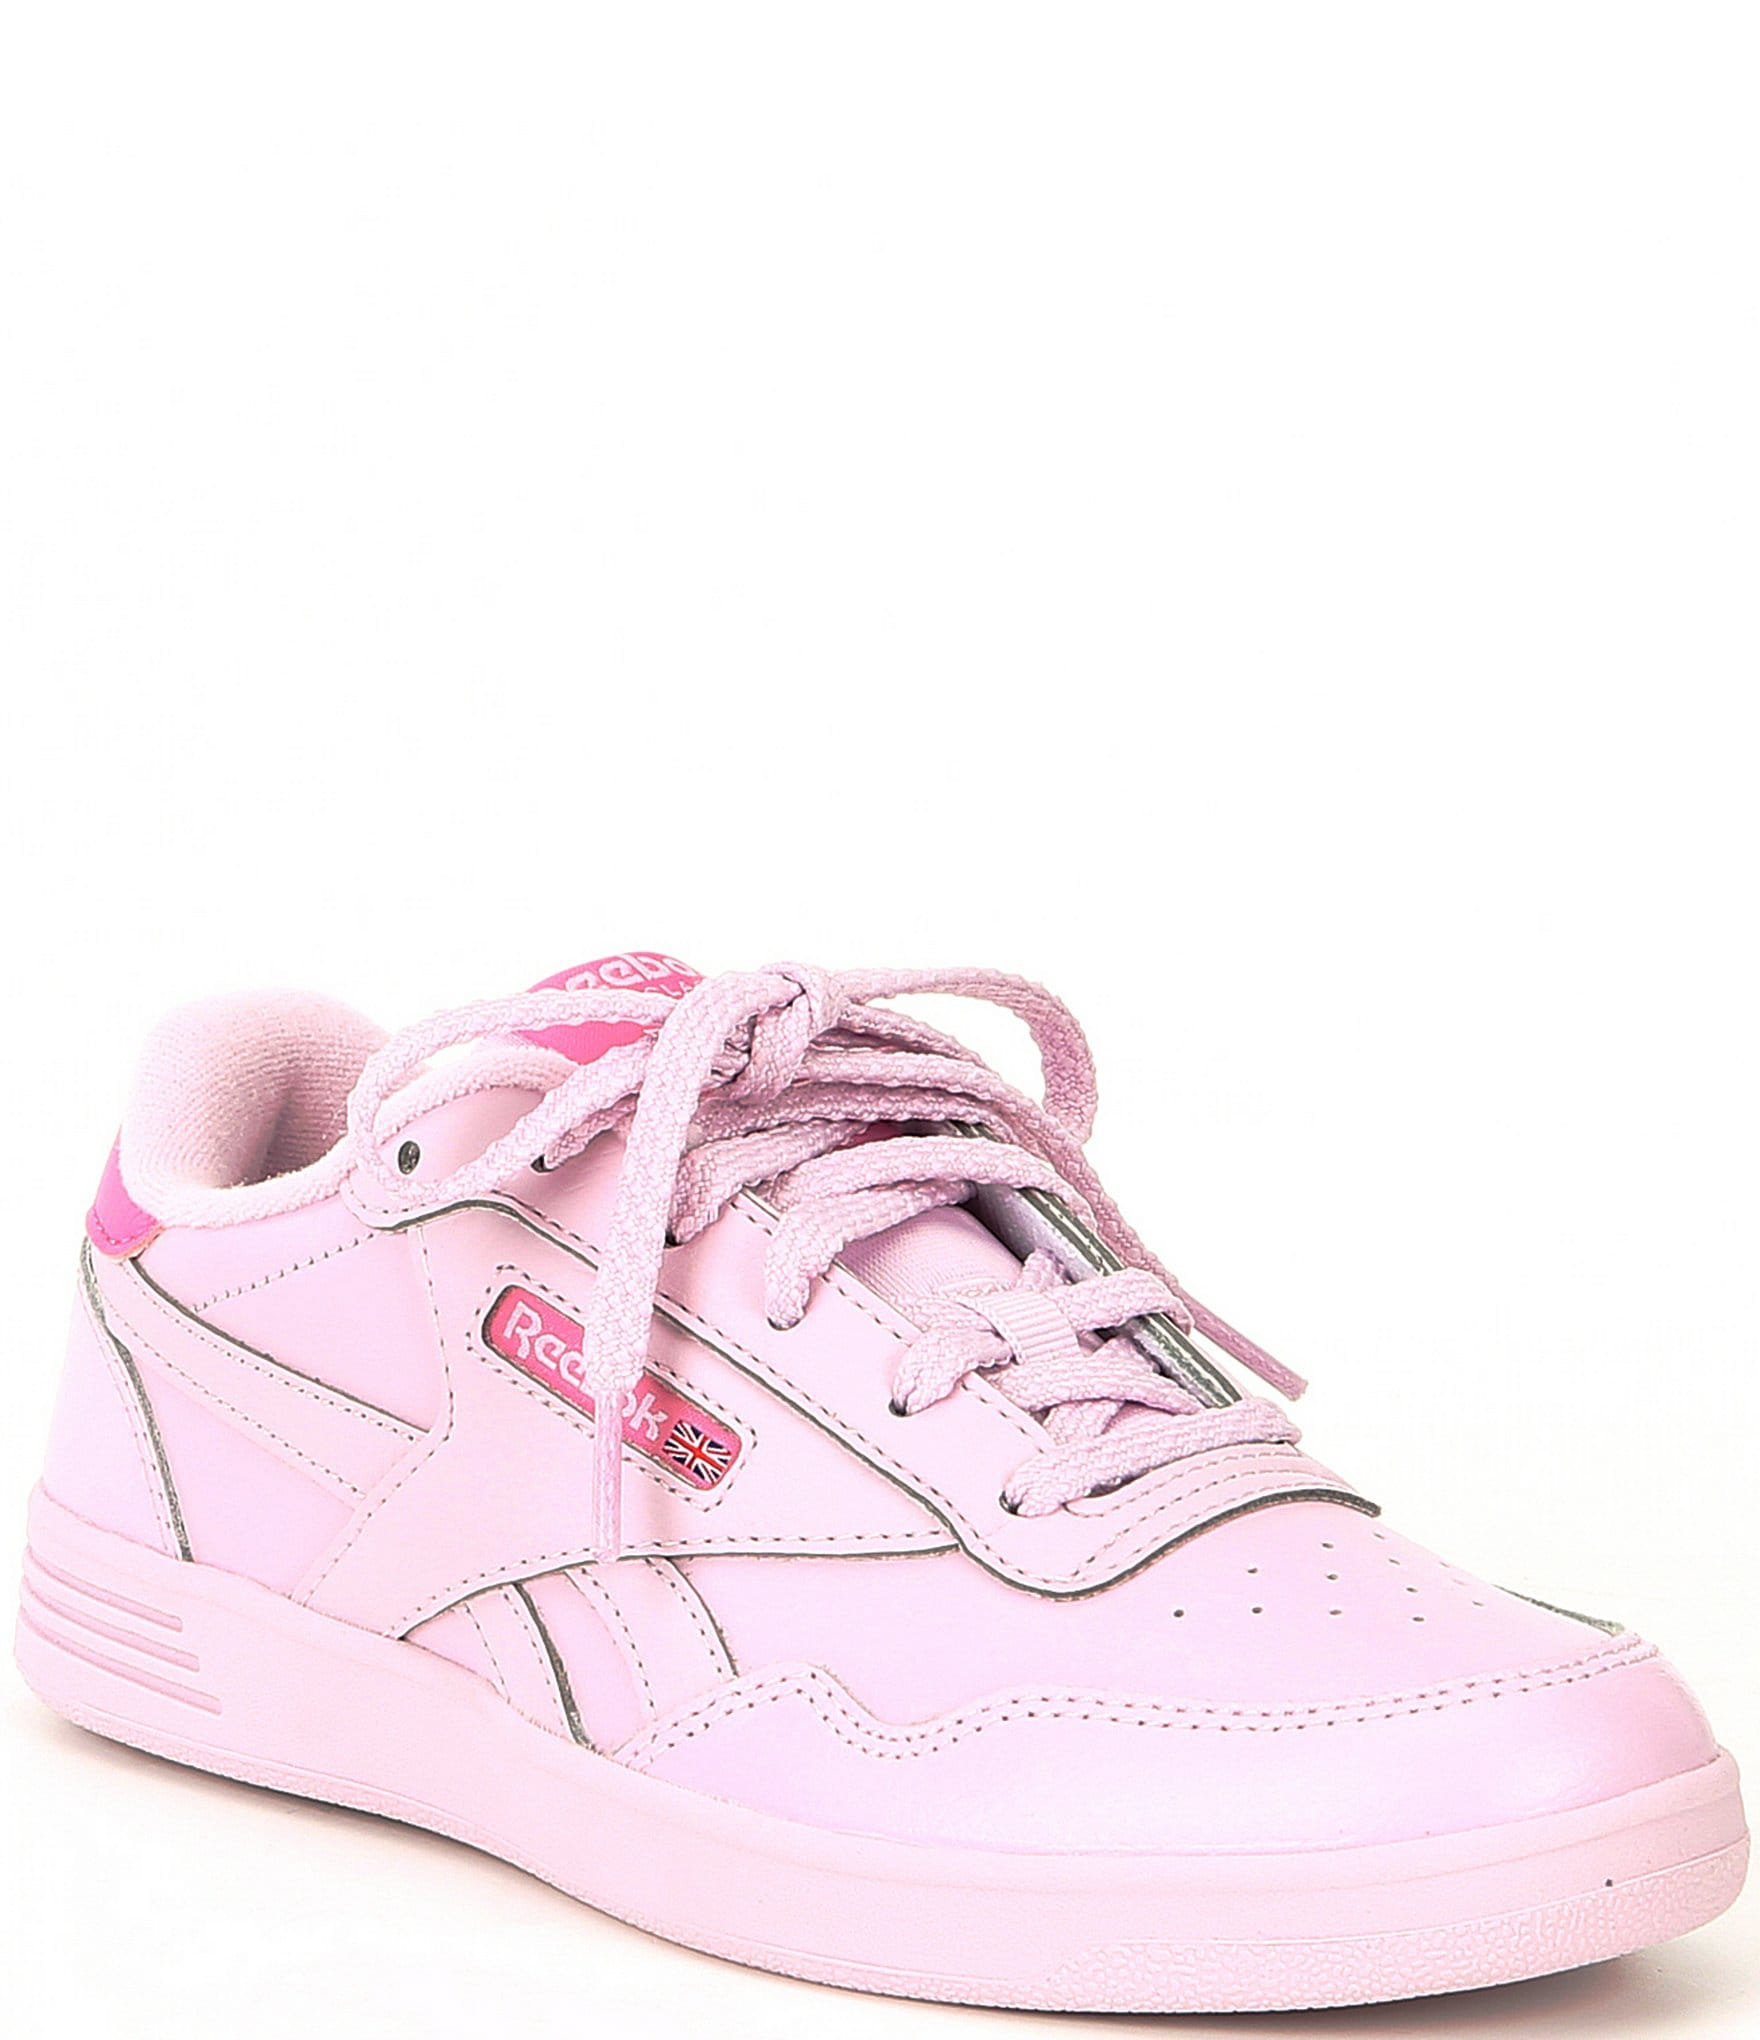 pink reebok sneakers,Boutique Officielle